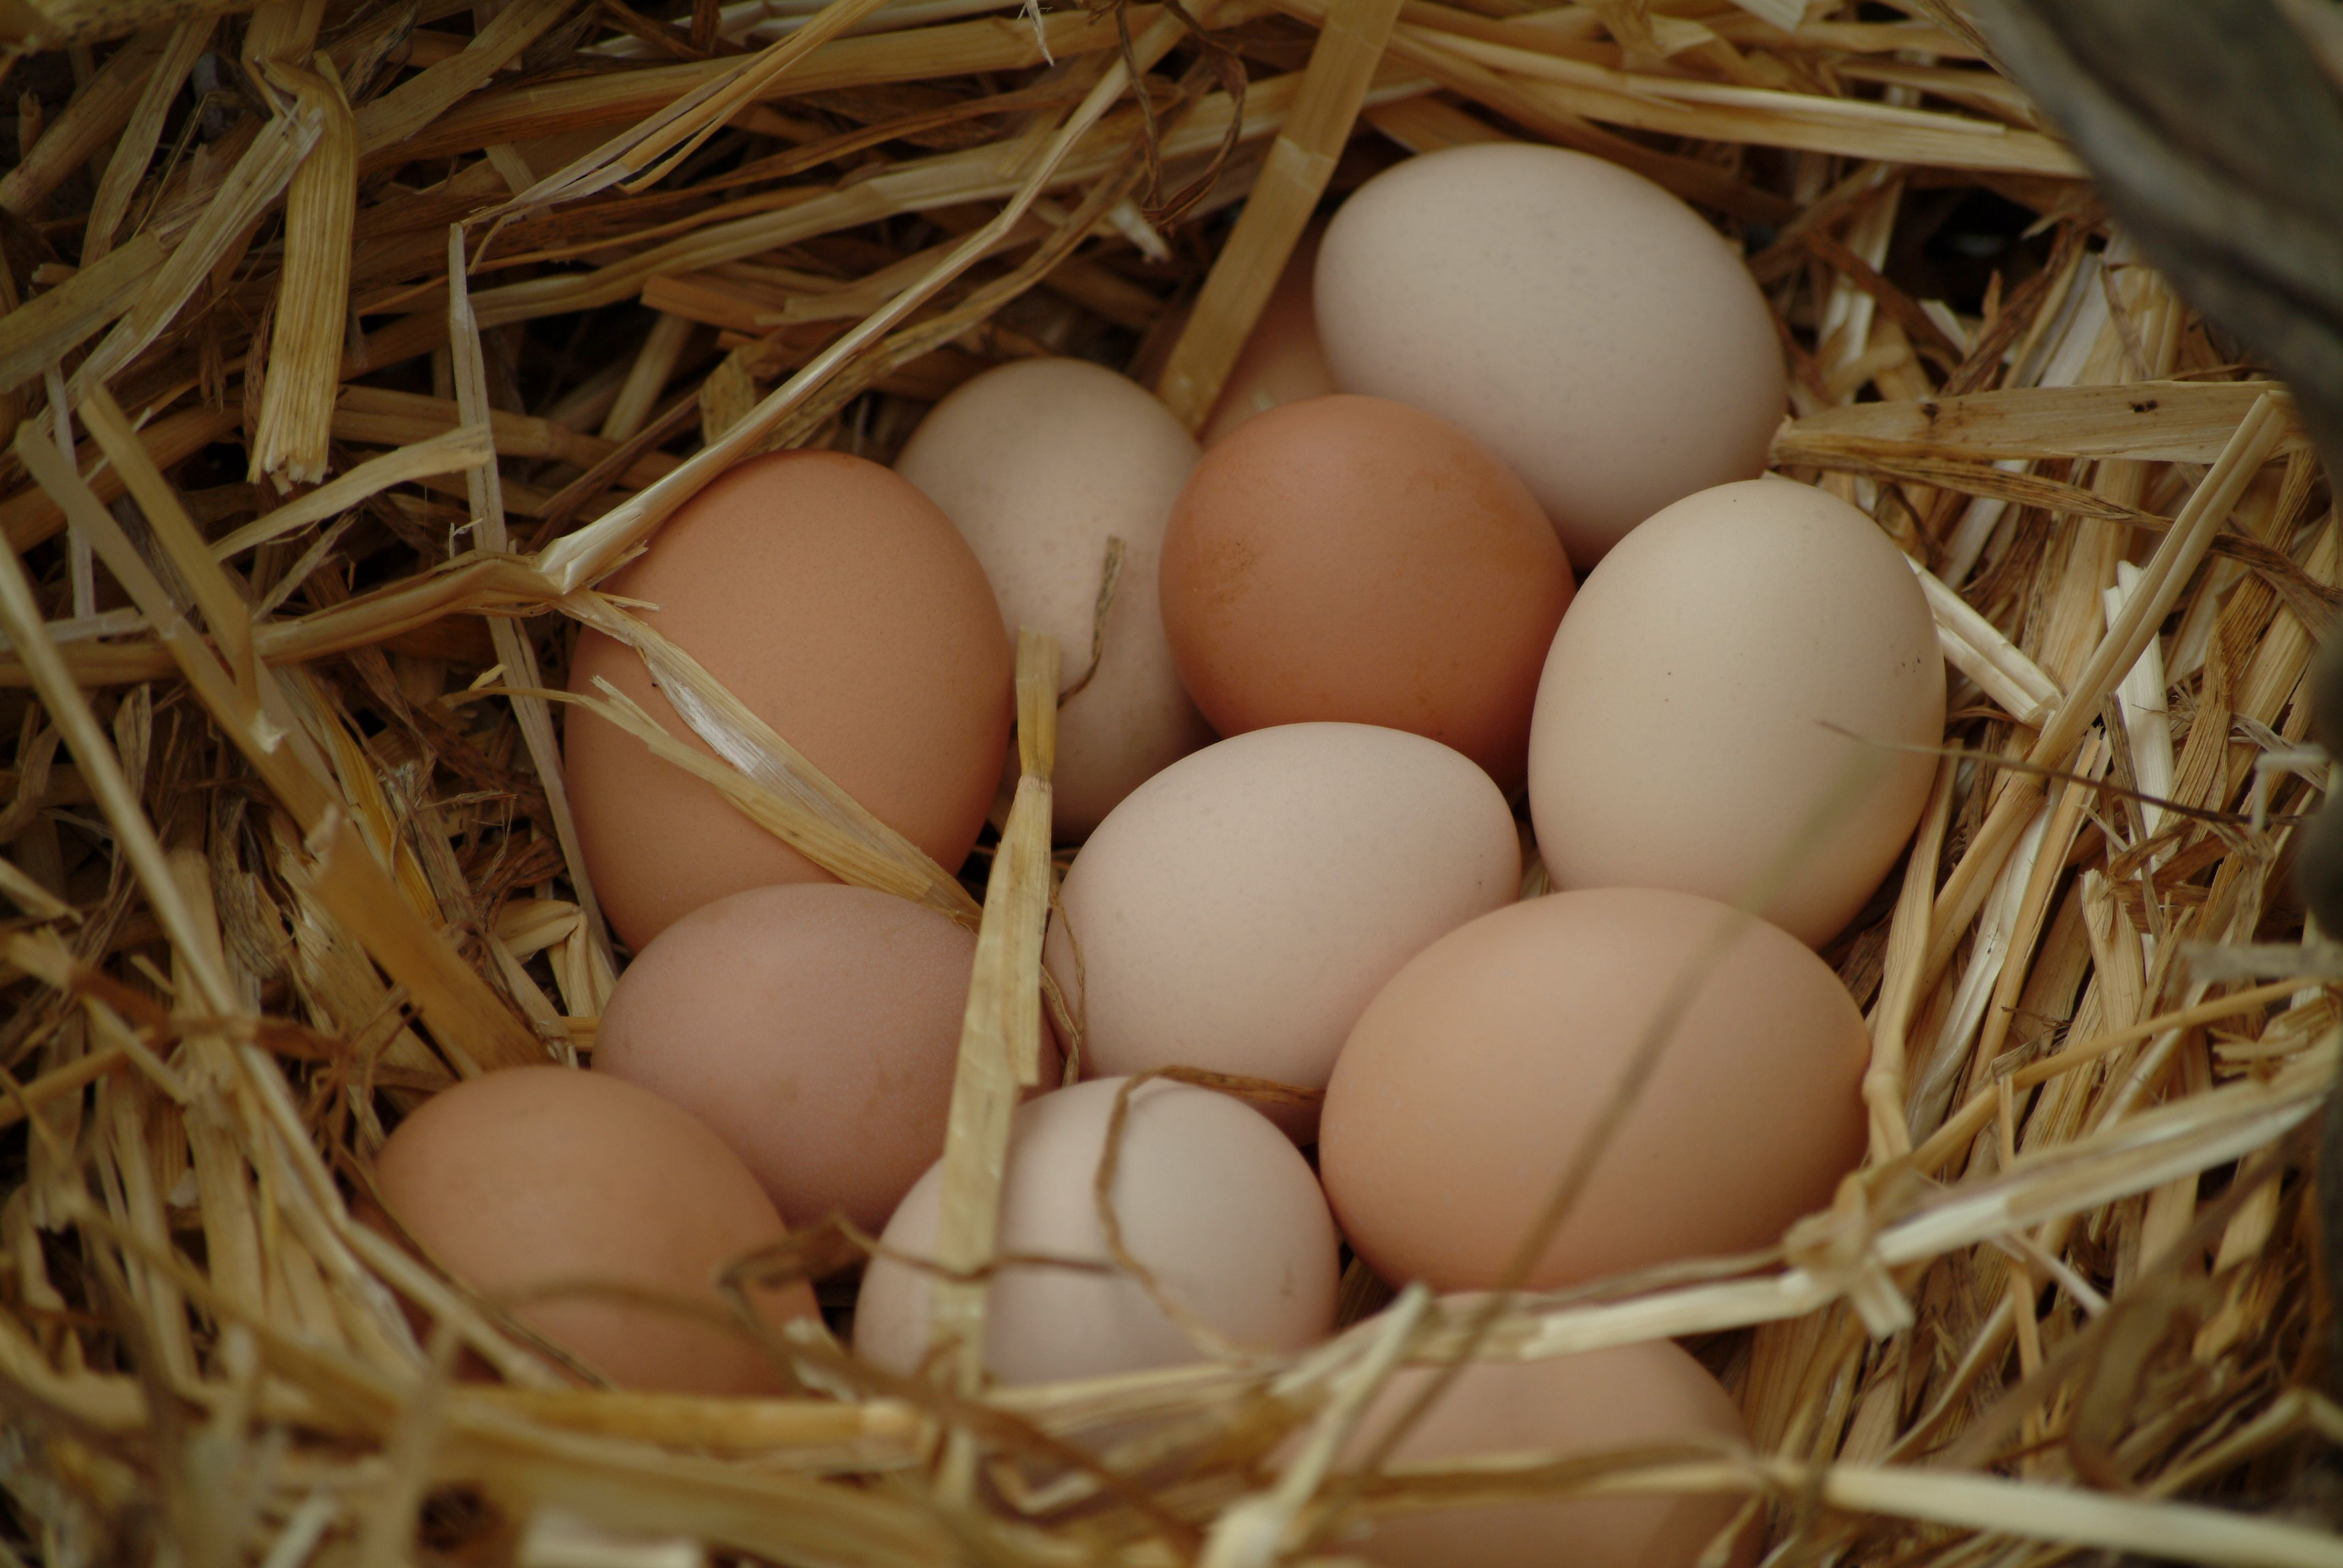 Several Hens use the same nest